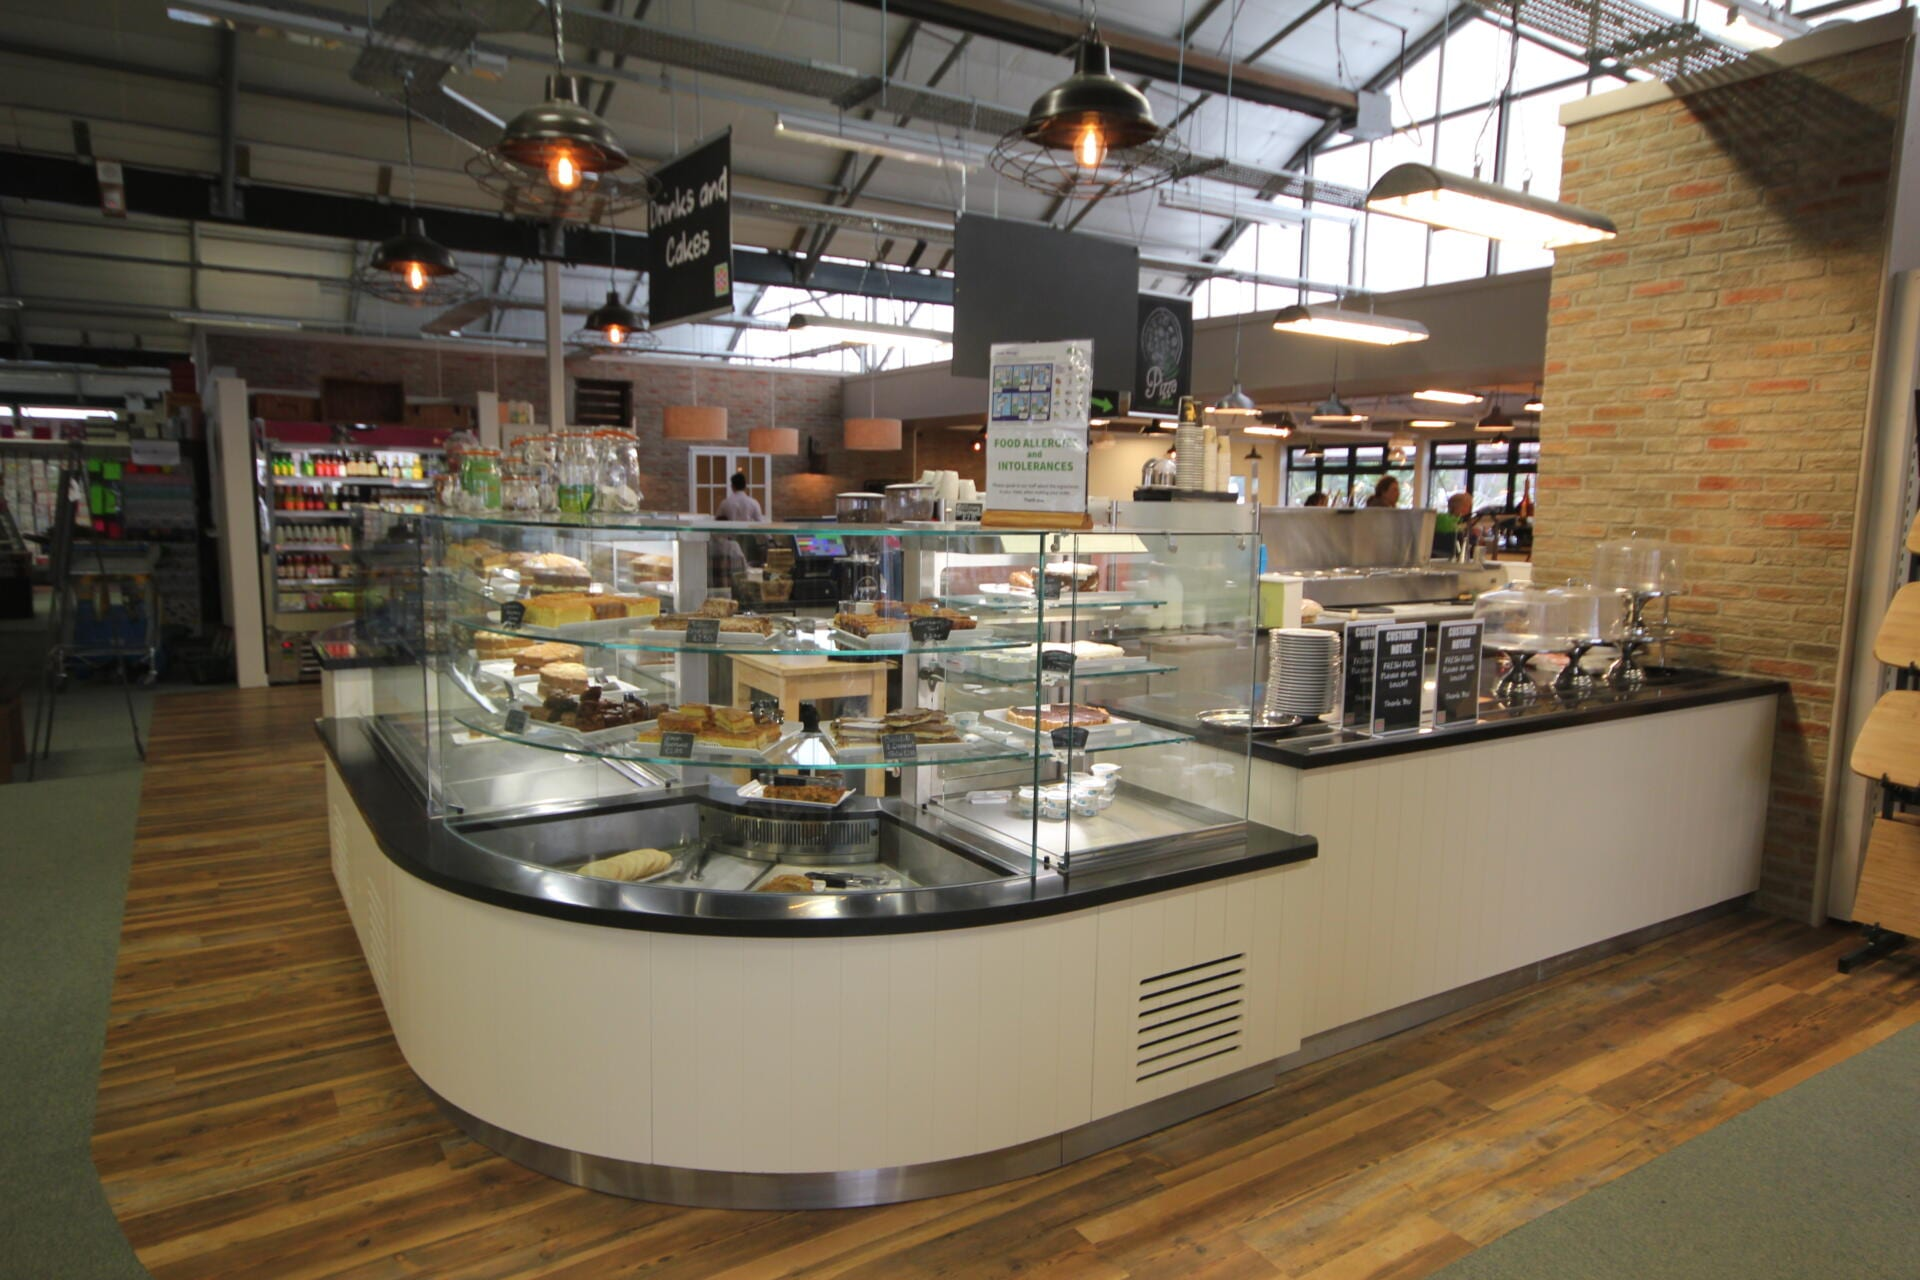 St Peters (servery counter,drop in chilled multideck,ambient patisserie display)